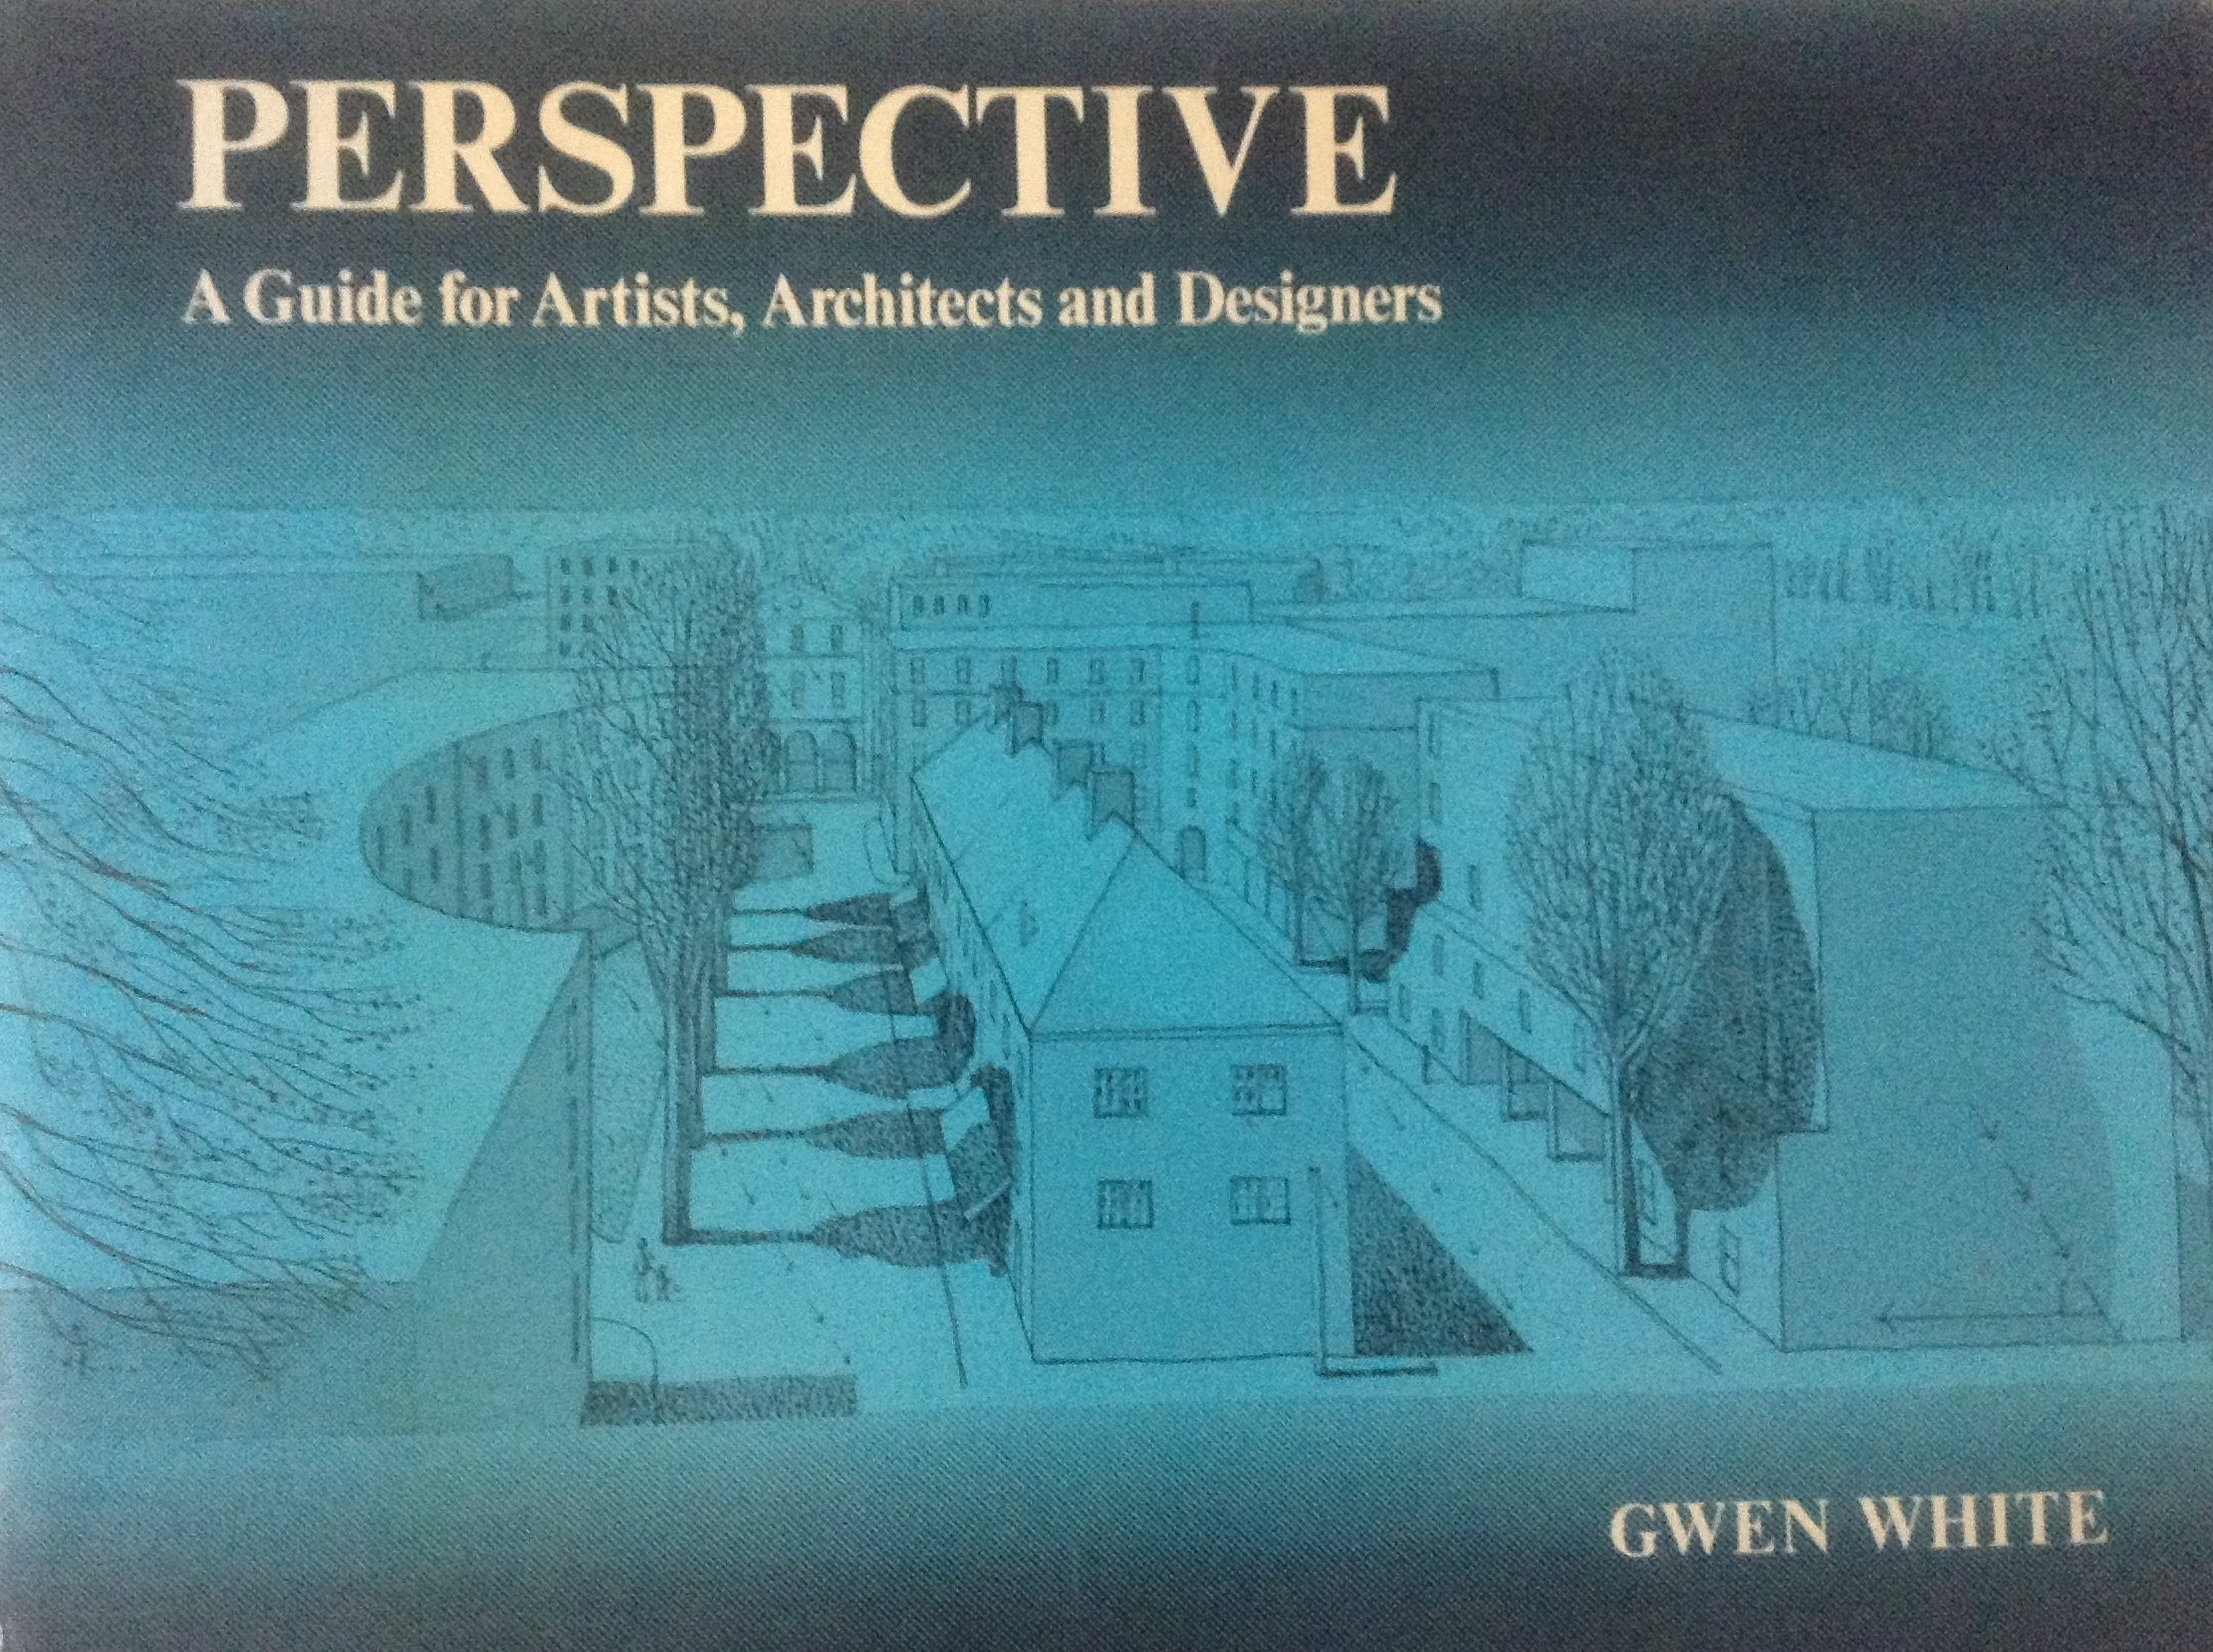 a guide for artists, architects and designers